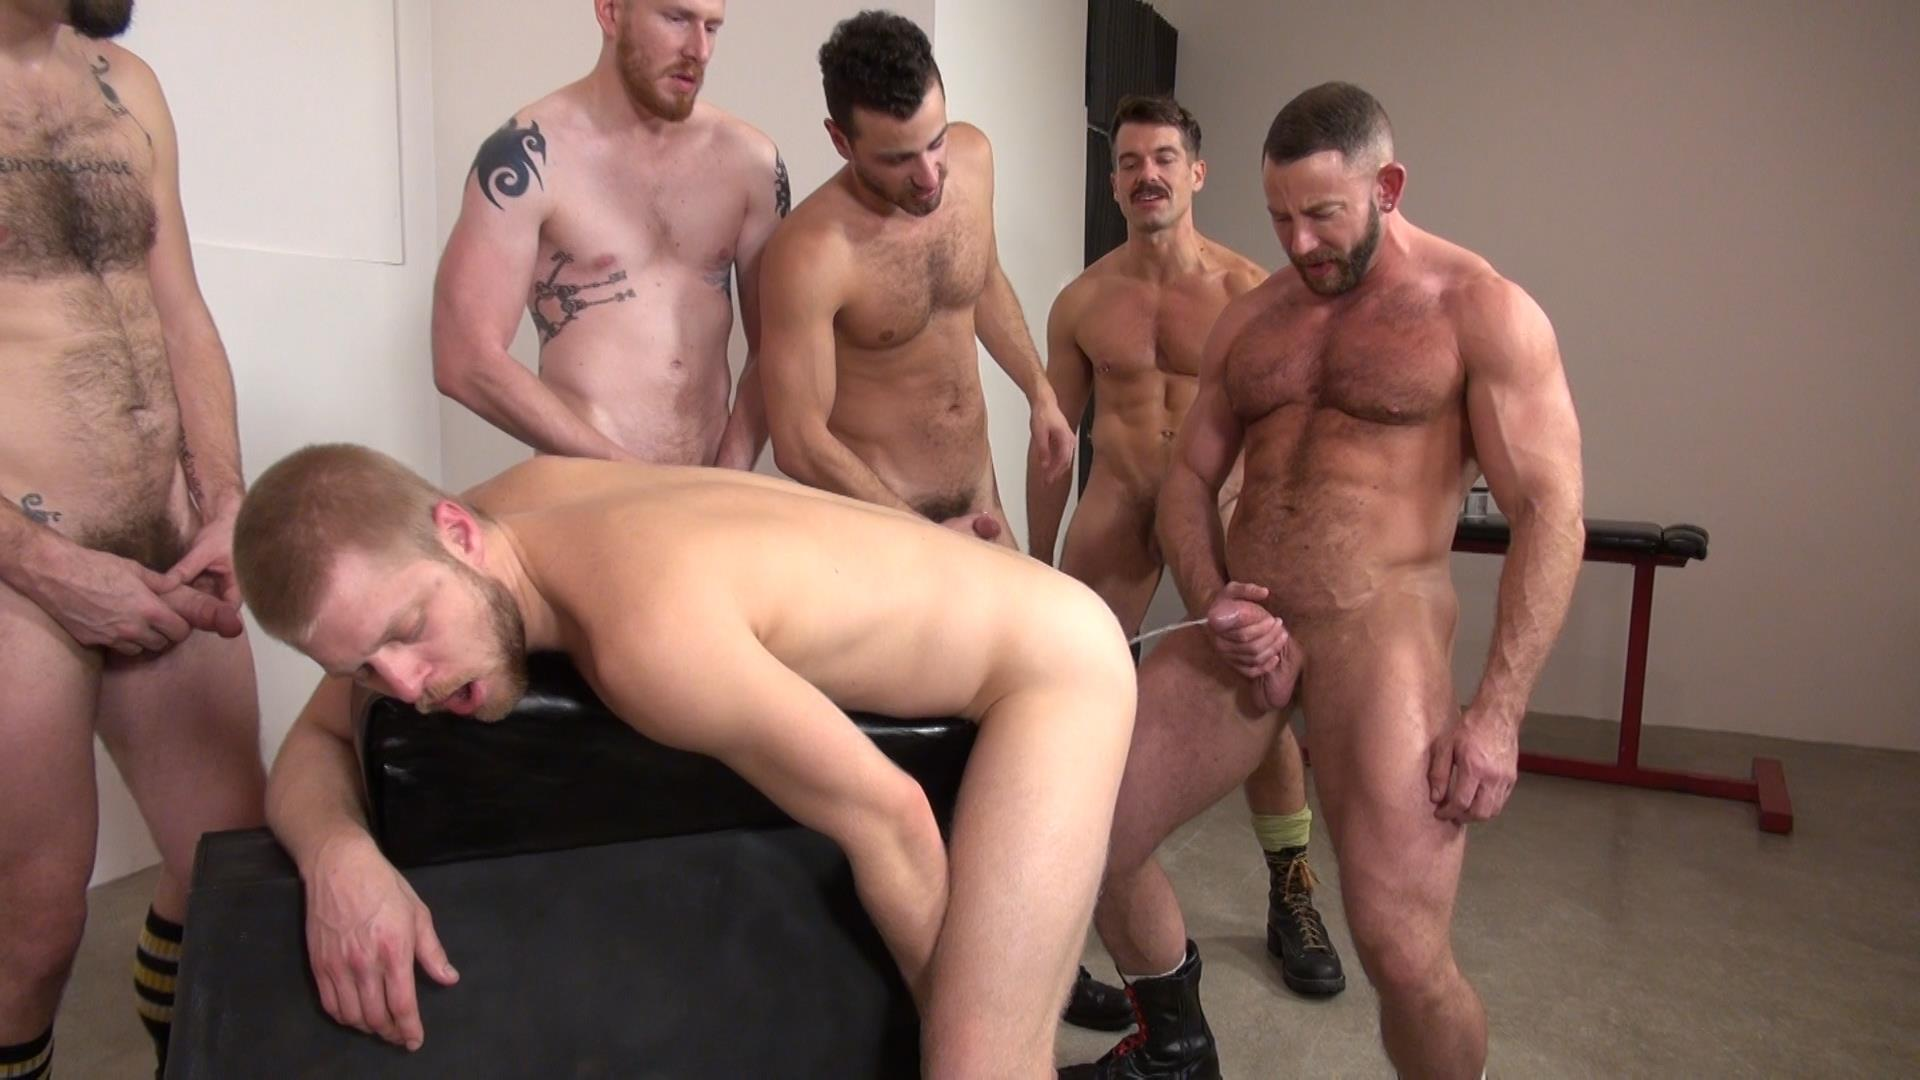 Gay sex orgie pictures